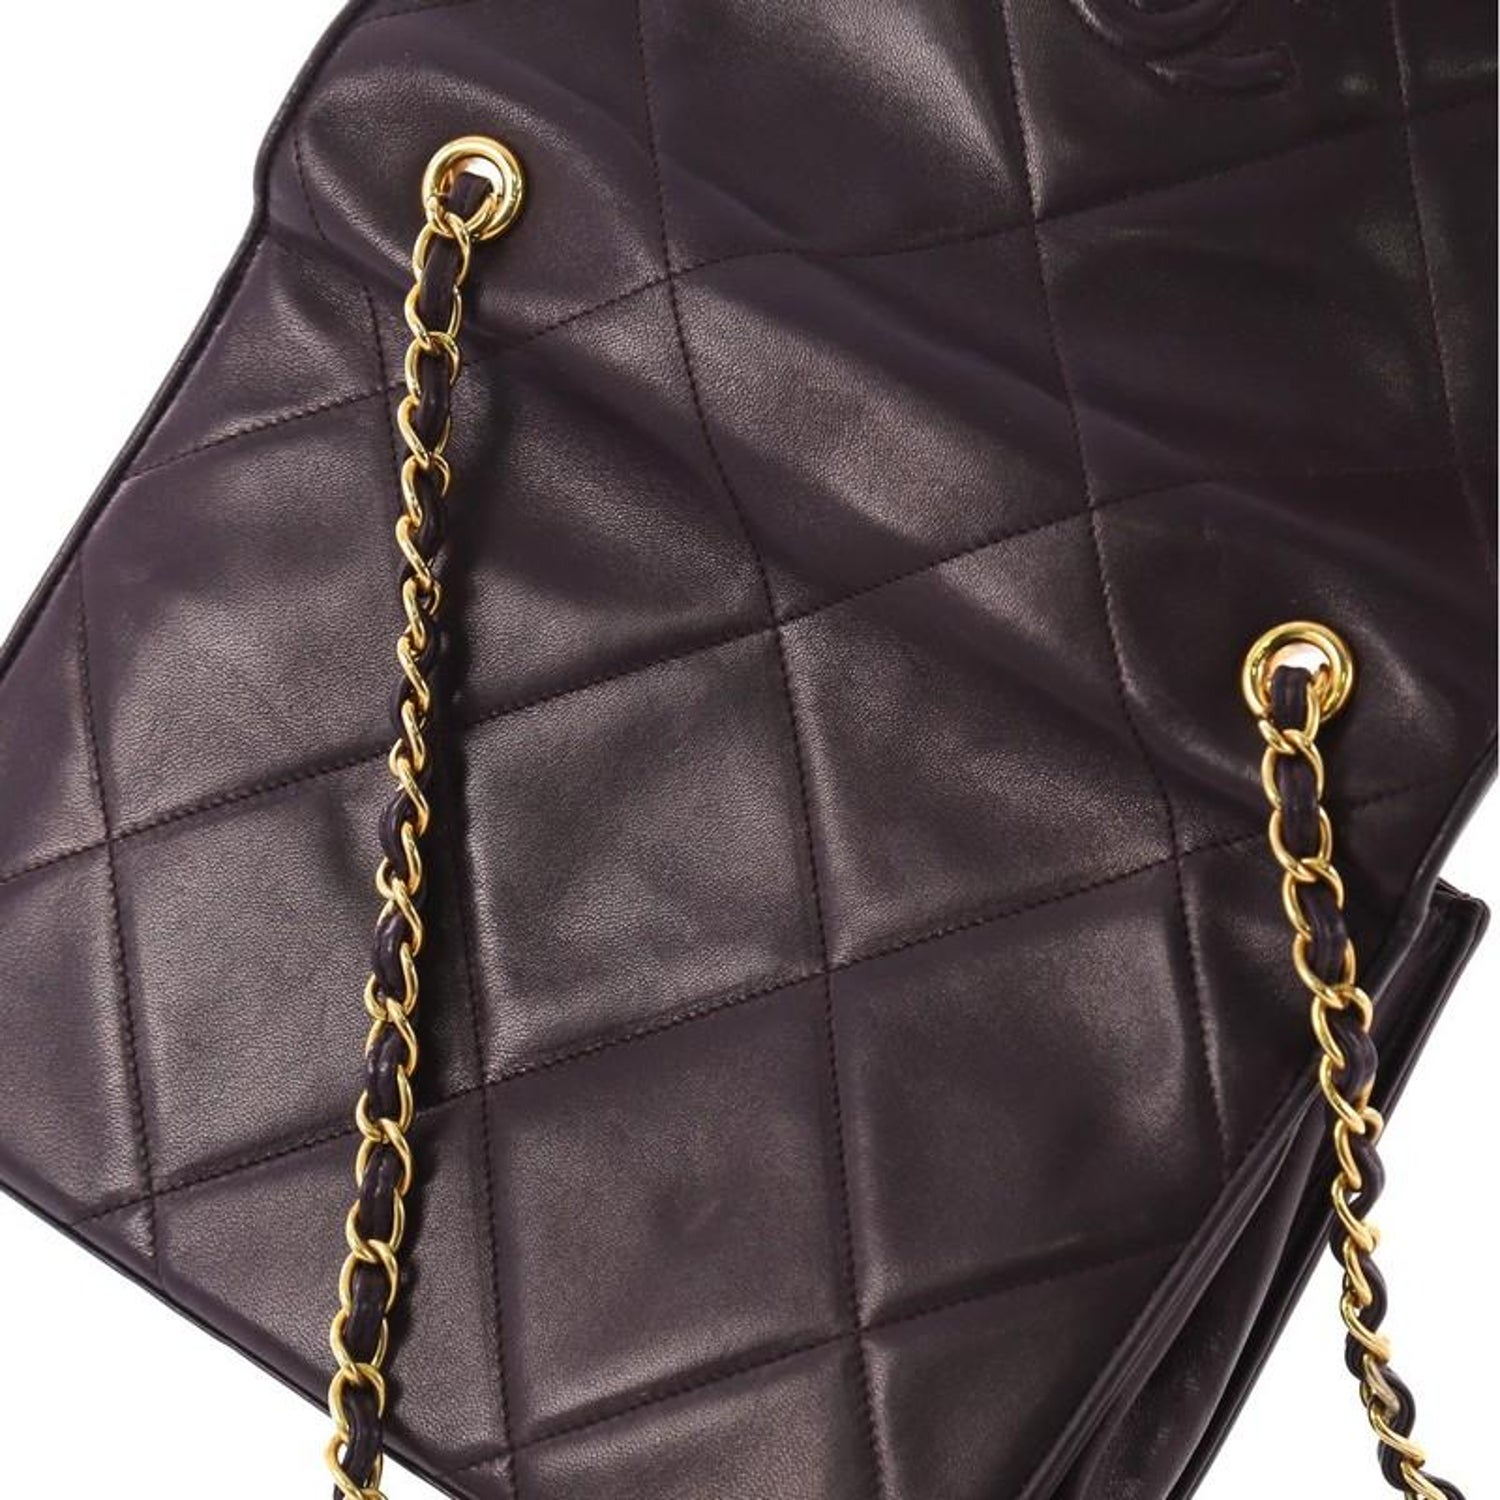 2a1e4342d32a Chanel Vintage Diamond CC Flap Bag Quilted Lambskin Small at 1stdibs